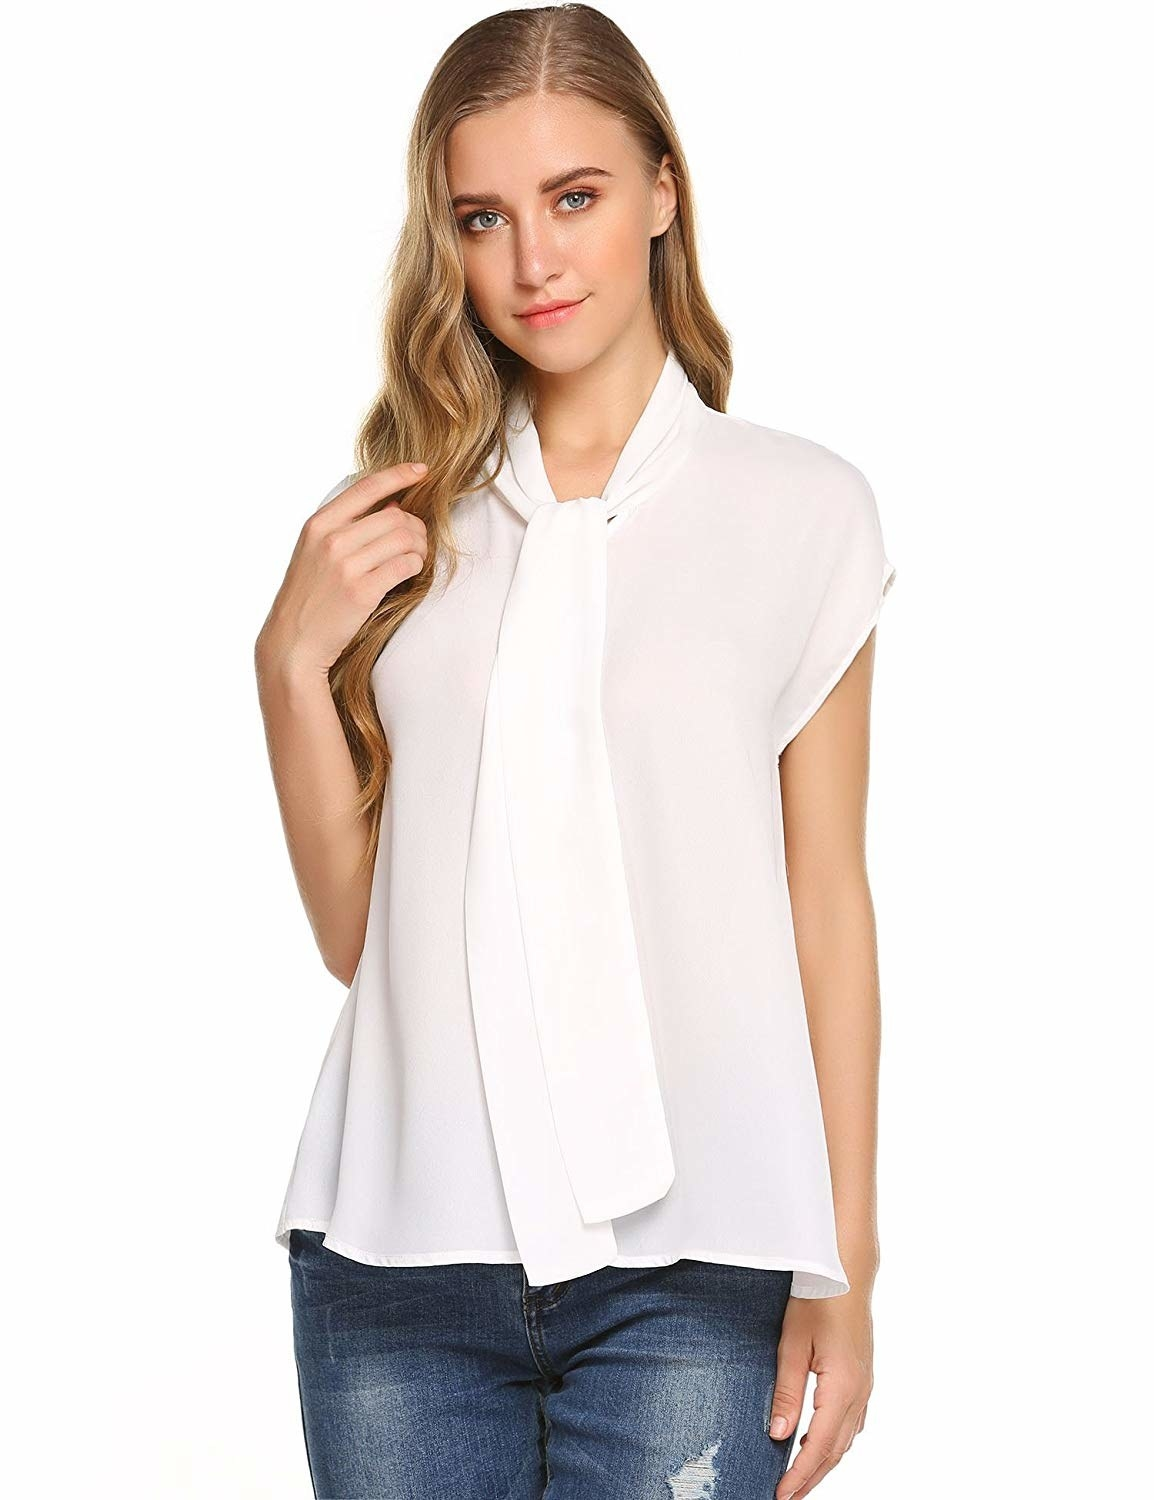 "Promising review: ""The blouse is very pretty and very breezy. I wore it to a job interview and received compliments from the interviewer."" —KenyaGet it from Amazon for .99+ (available in sizes S-XXL and in four colors)."